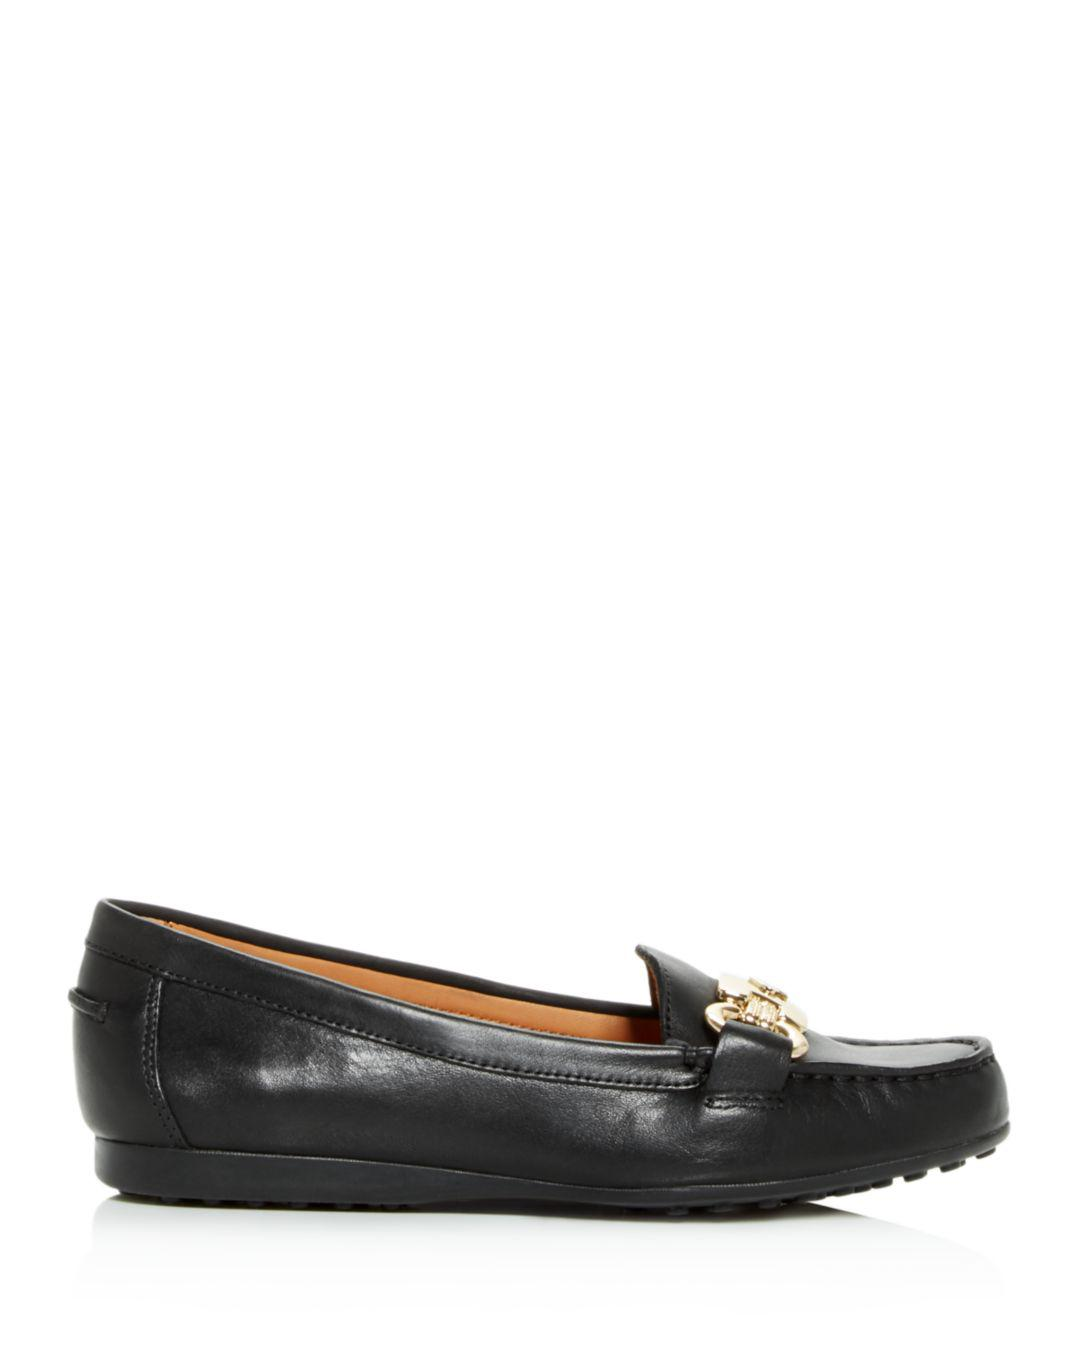 708928816e0 Lyst - Kate Spade Women s Carson Loafers in Black - Save 25%